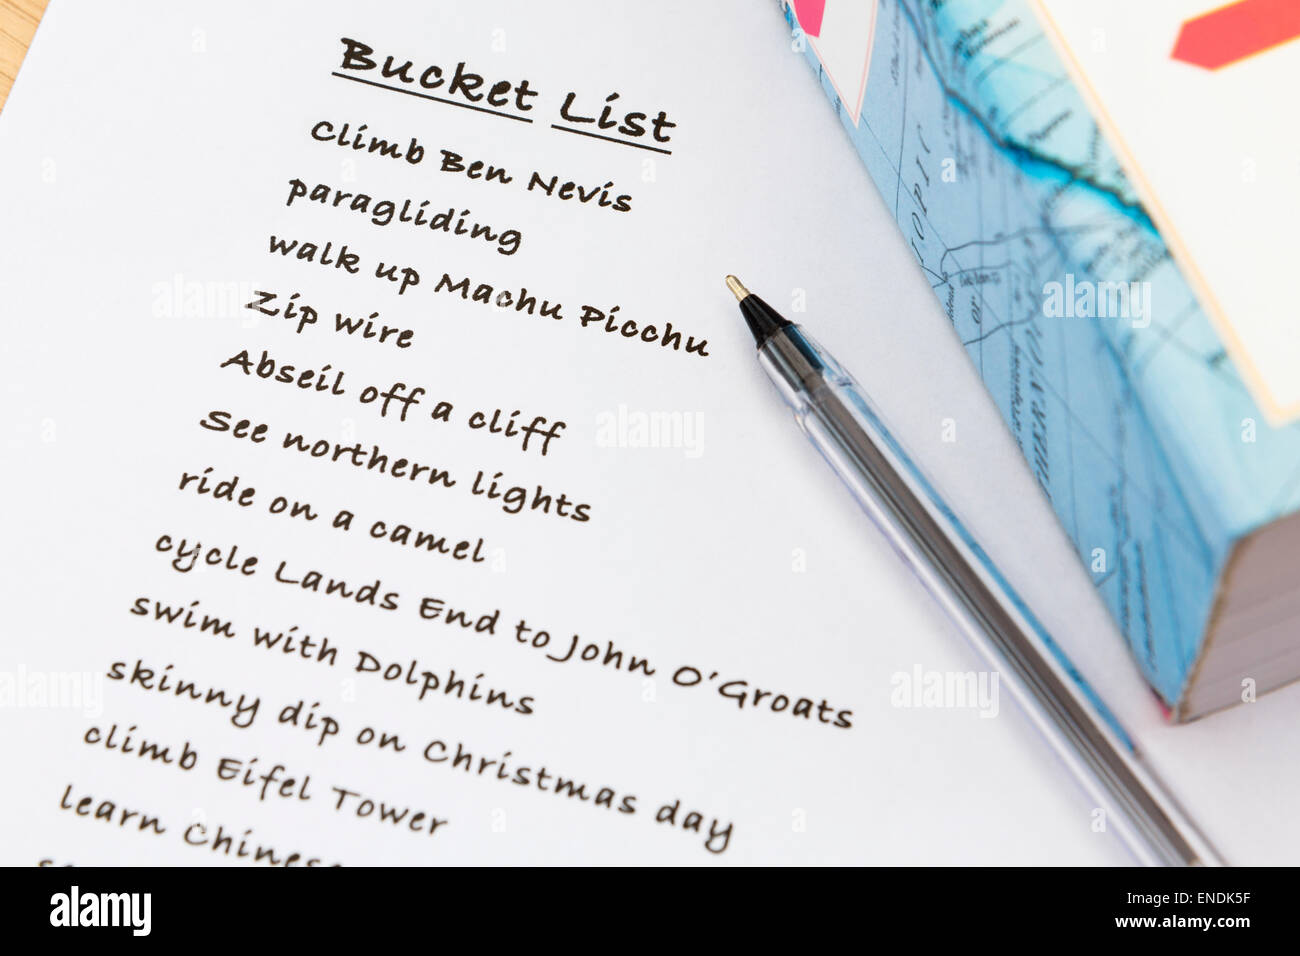 An English person's to do list of ideas plans written on white note paper with a black pen and travel guide - Stock Image